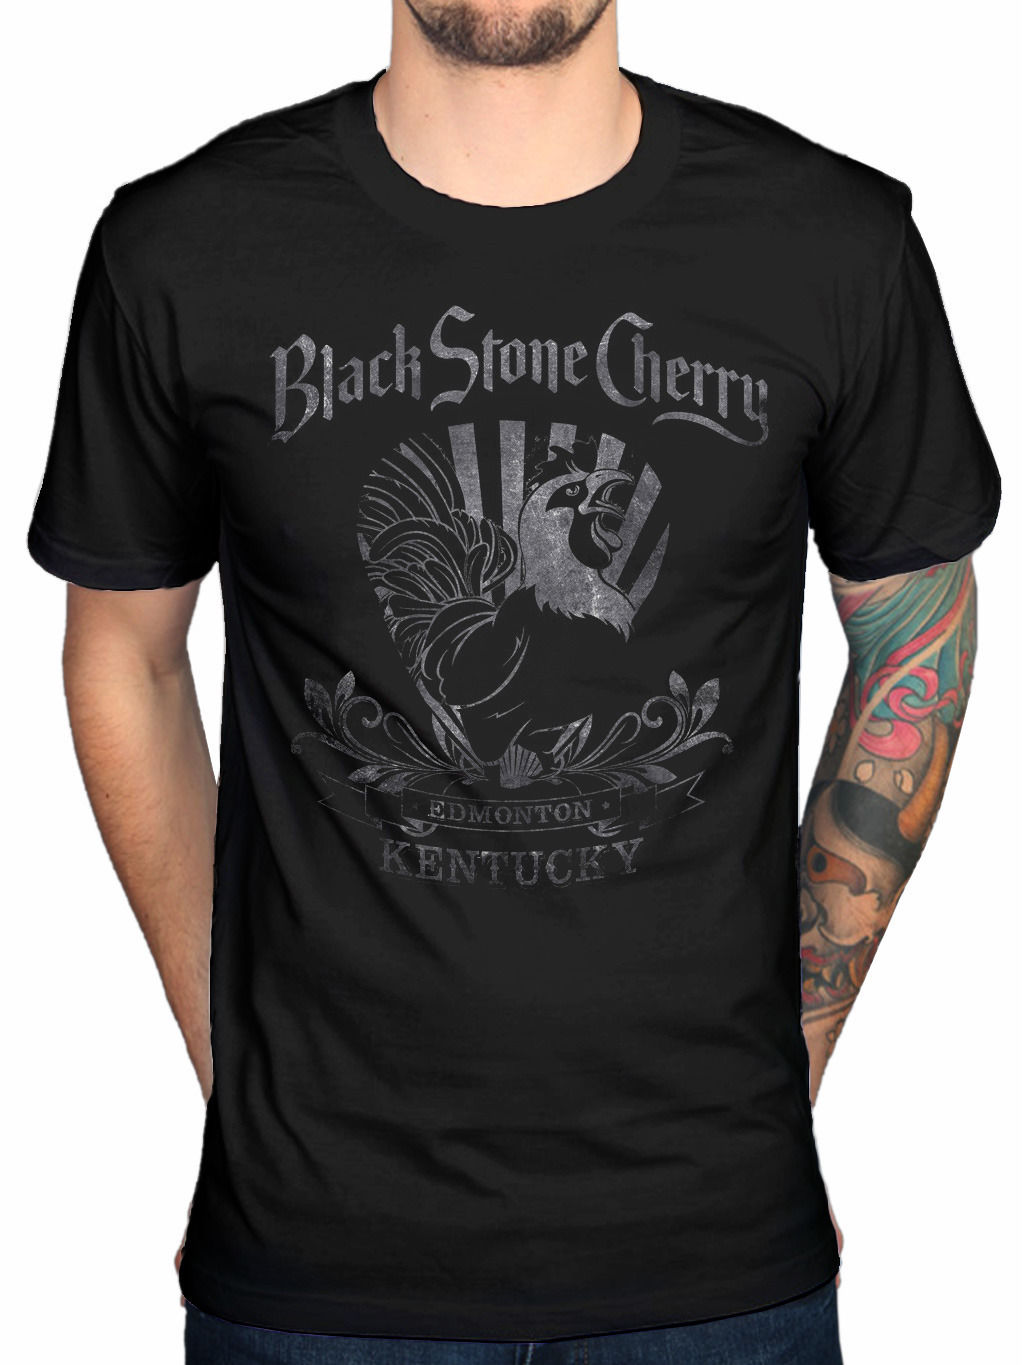 Design your own t shirt edmonton - 2017 Cool Men Funny Black Stone Cherry Rooster T Shirt Rock Chris Robertson Magic Mountain Design